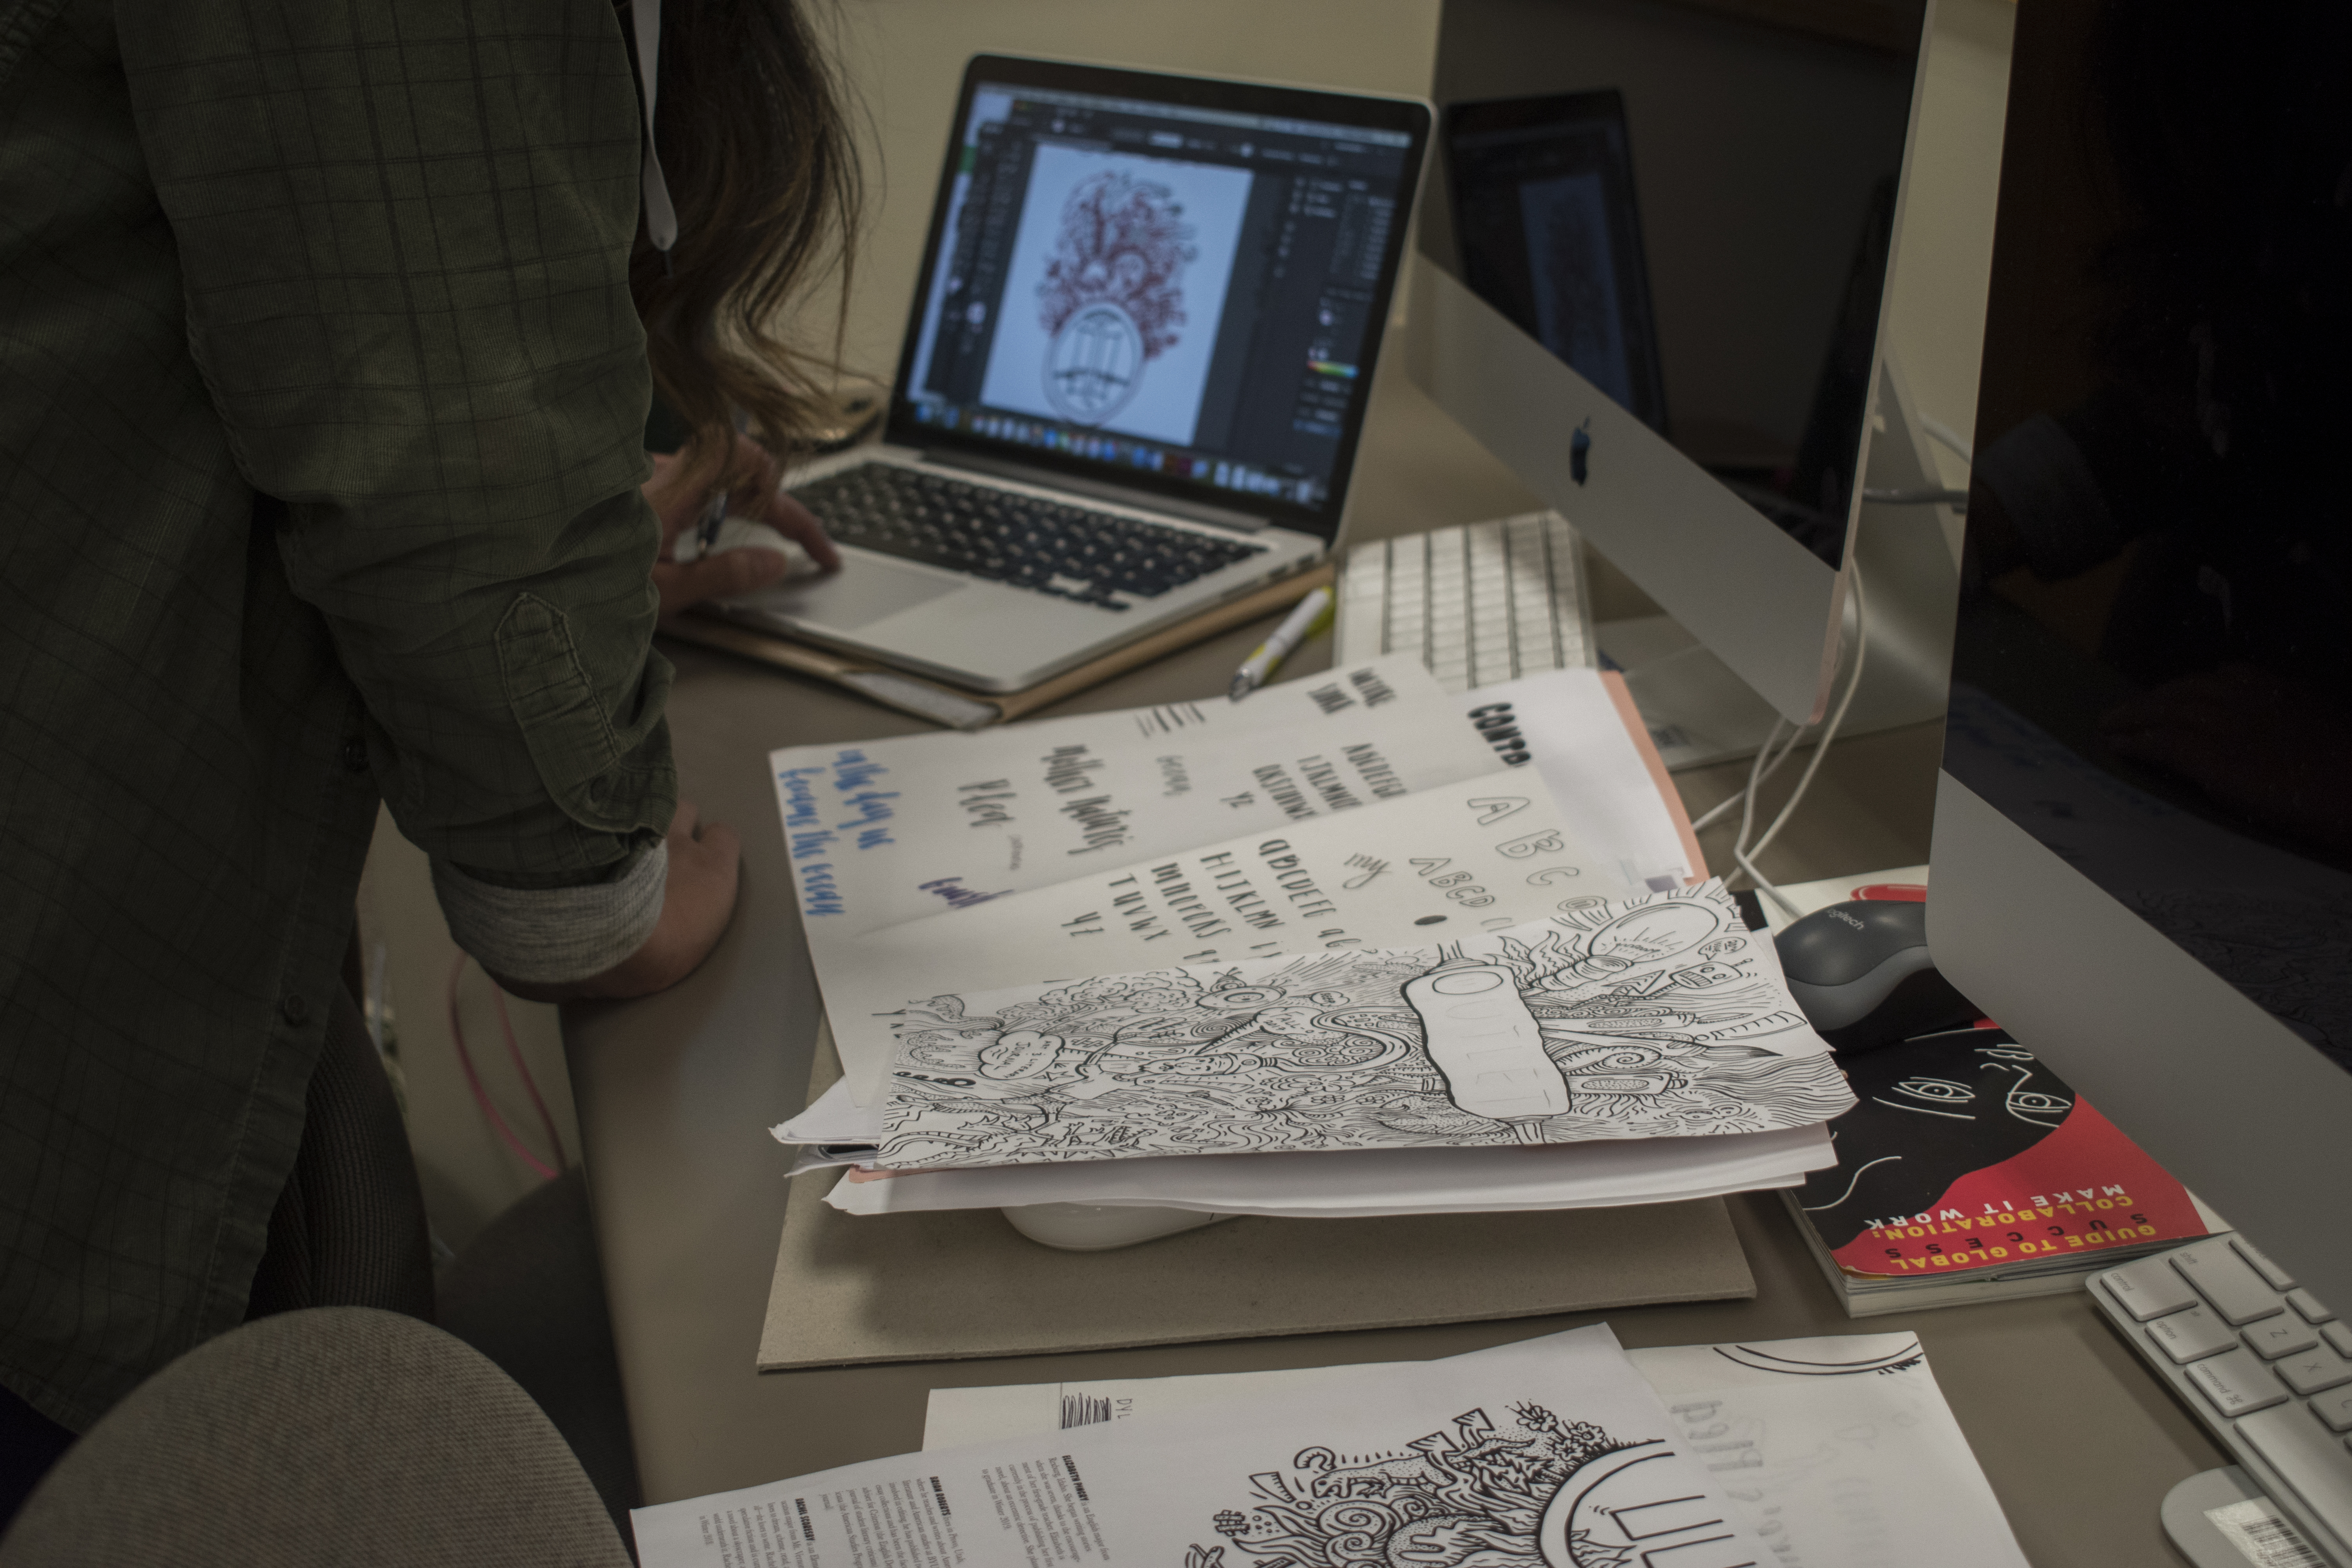 Graphic Design students working on the Outlet Magazine